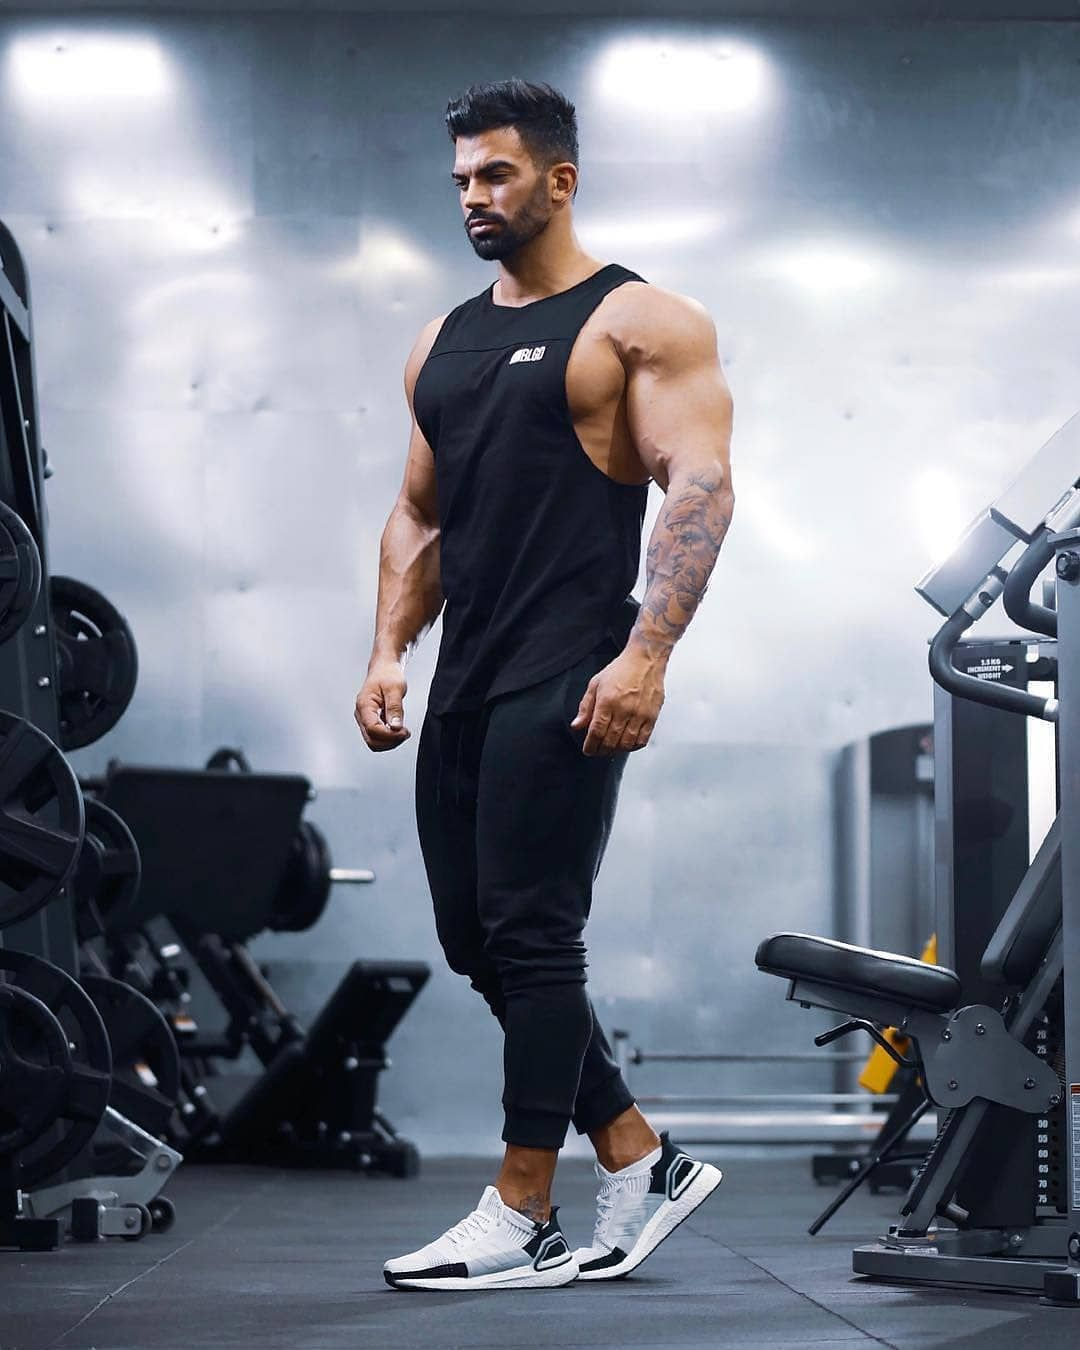 Workout 4 Gym Total Workout Swipe Left To All Exercise Follow Workout 4 Workout 4 Gym Total Workout Sw Total Workout Bodybuilding T Shirts Sporty Looks